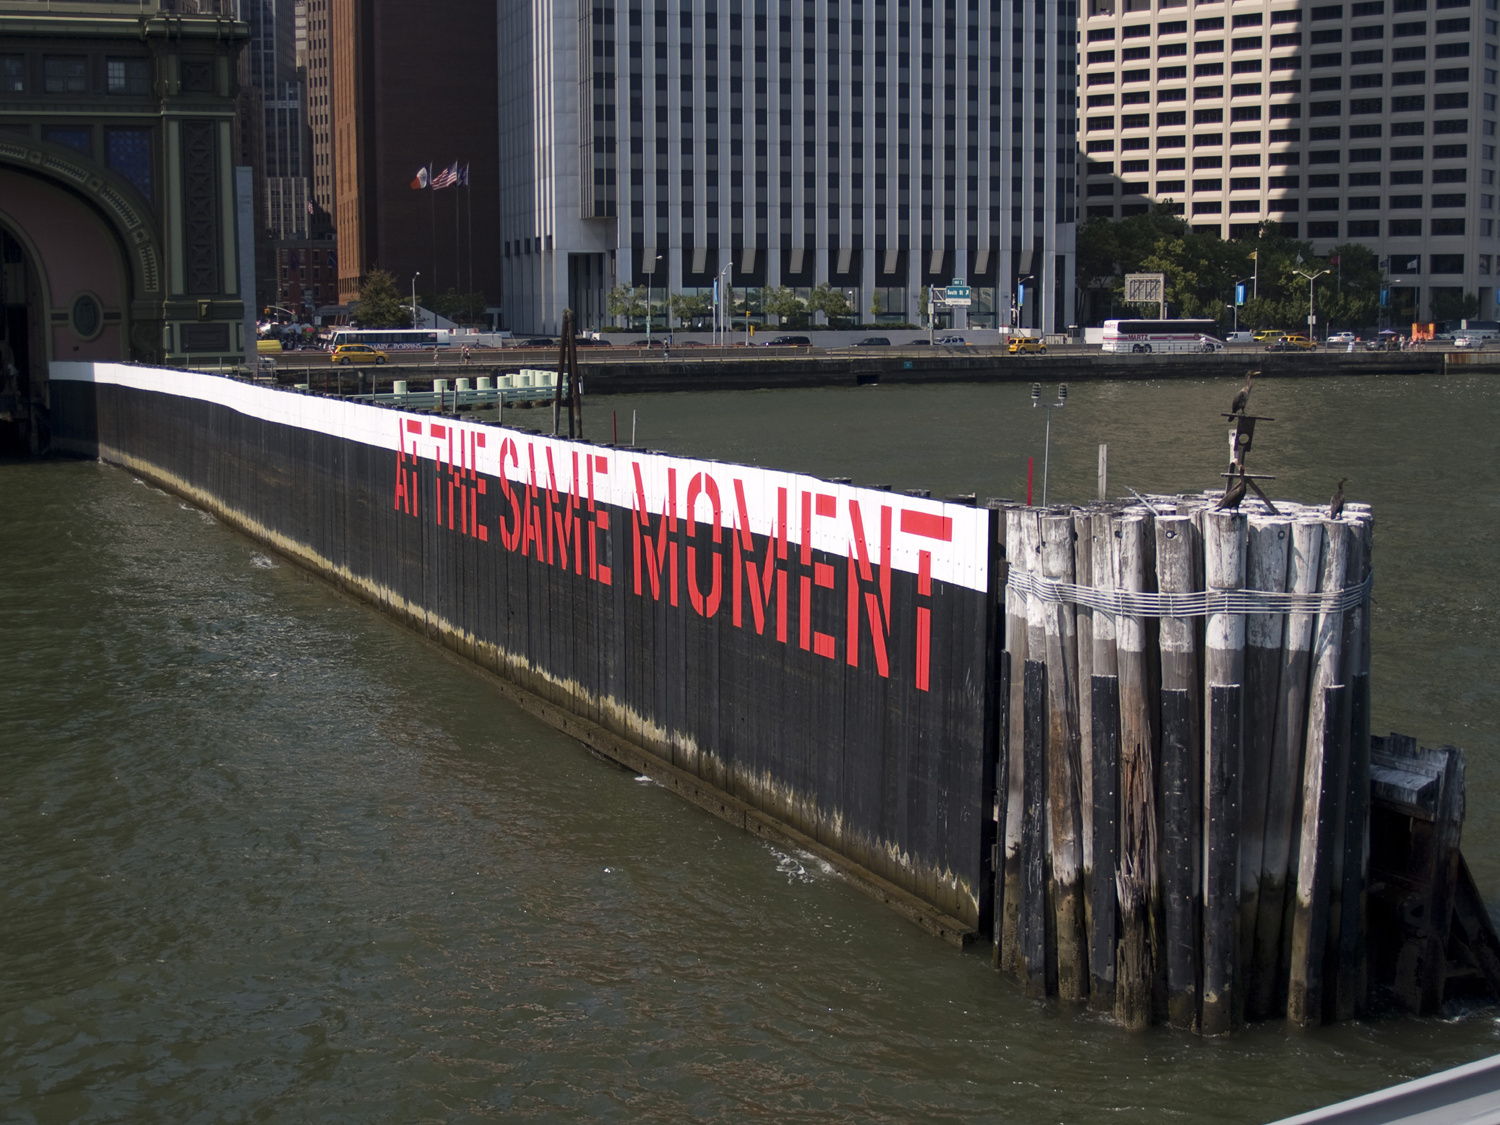 Lawrence Weiner, Outdoor project sponsored by Creative Time: The World & Nearer Ones at Governor's Island, NYC, 2009